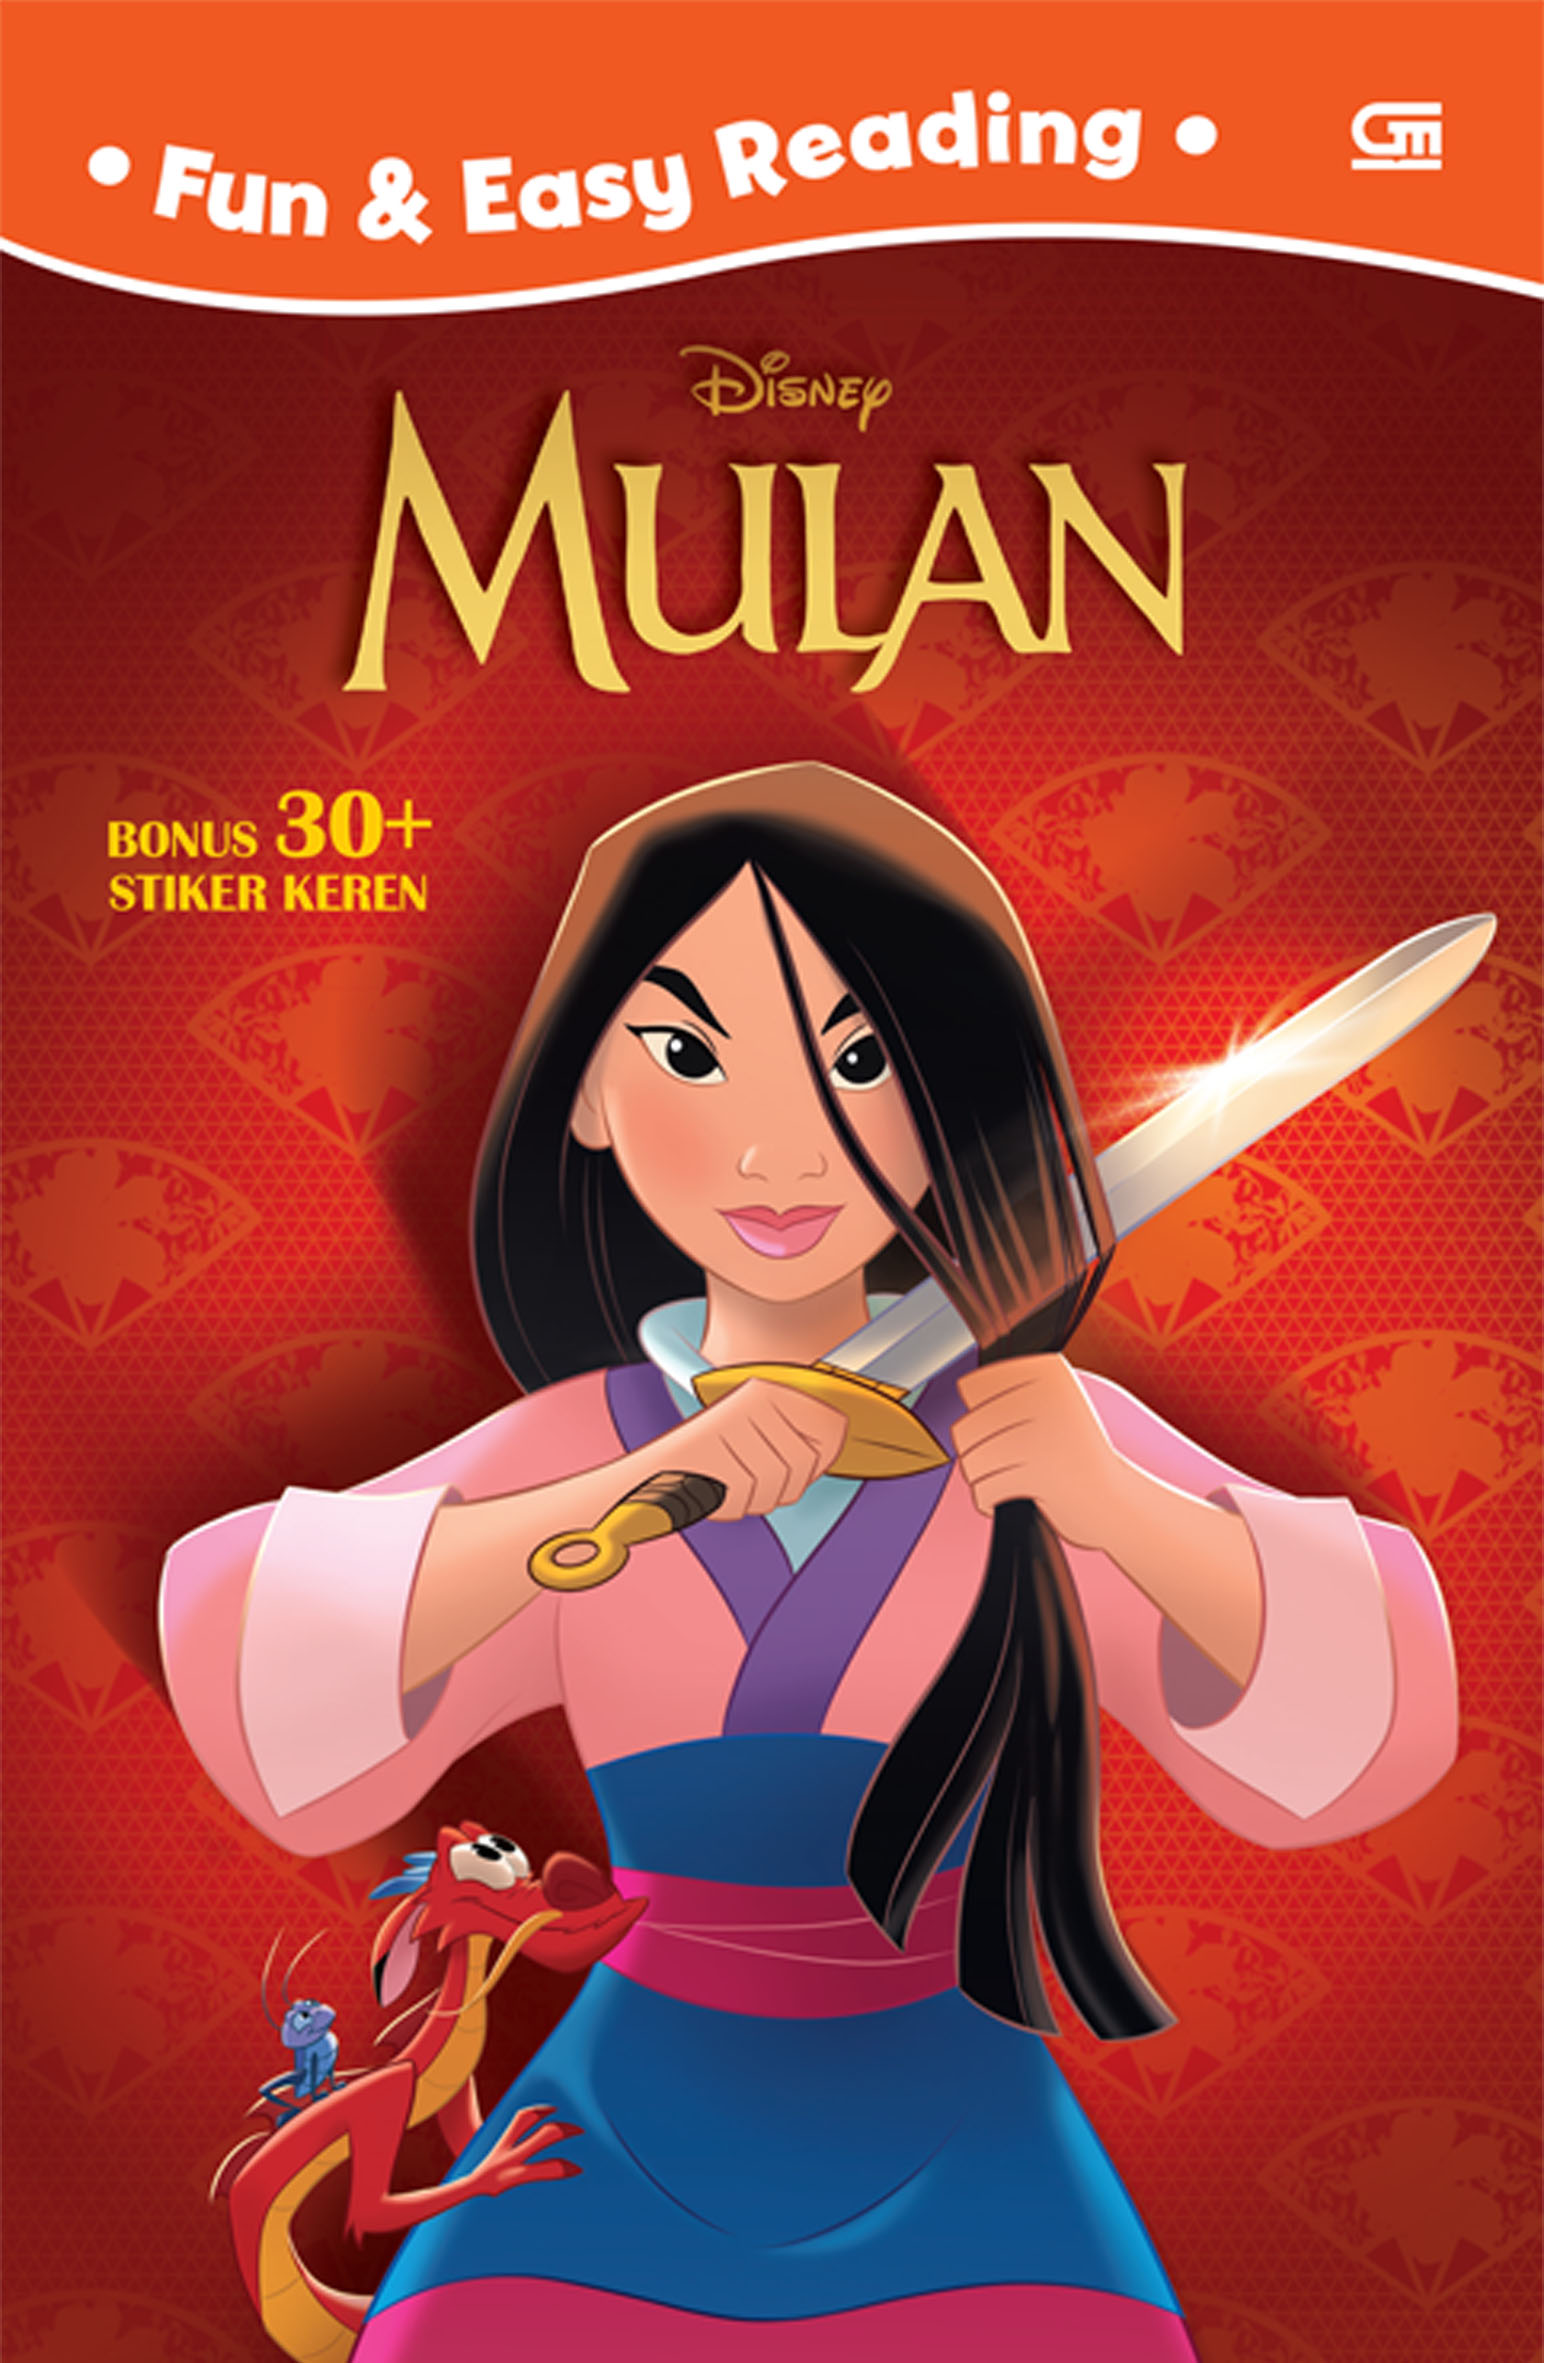 Mulan - Fun & Easy Reading